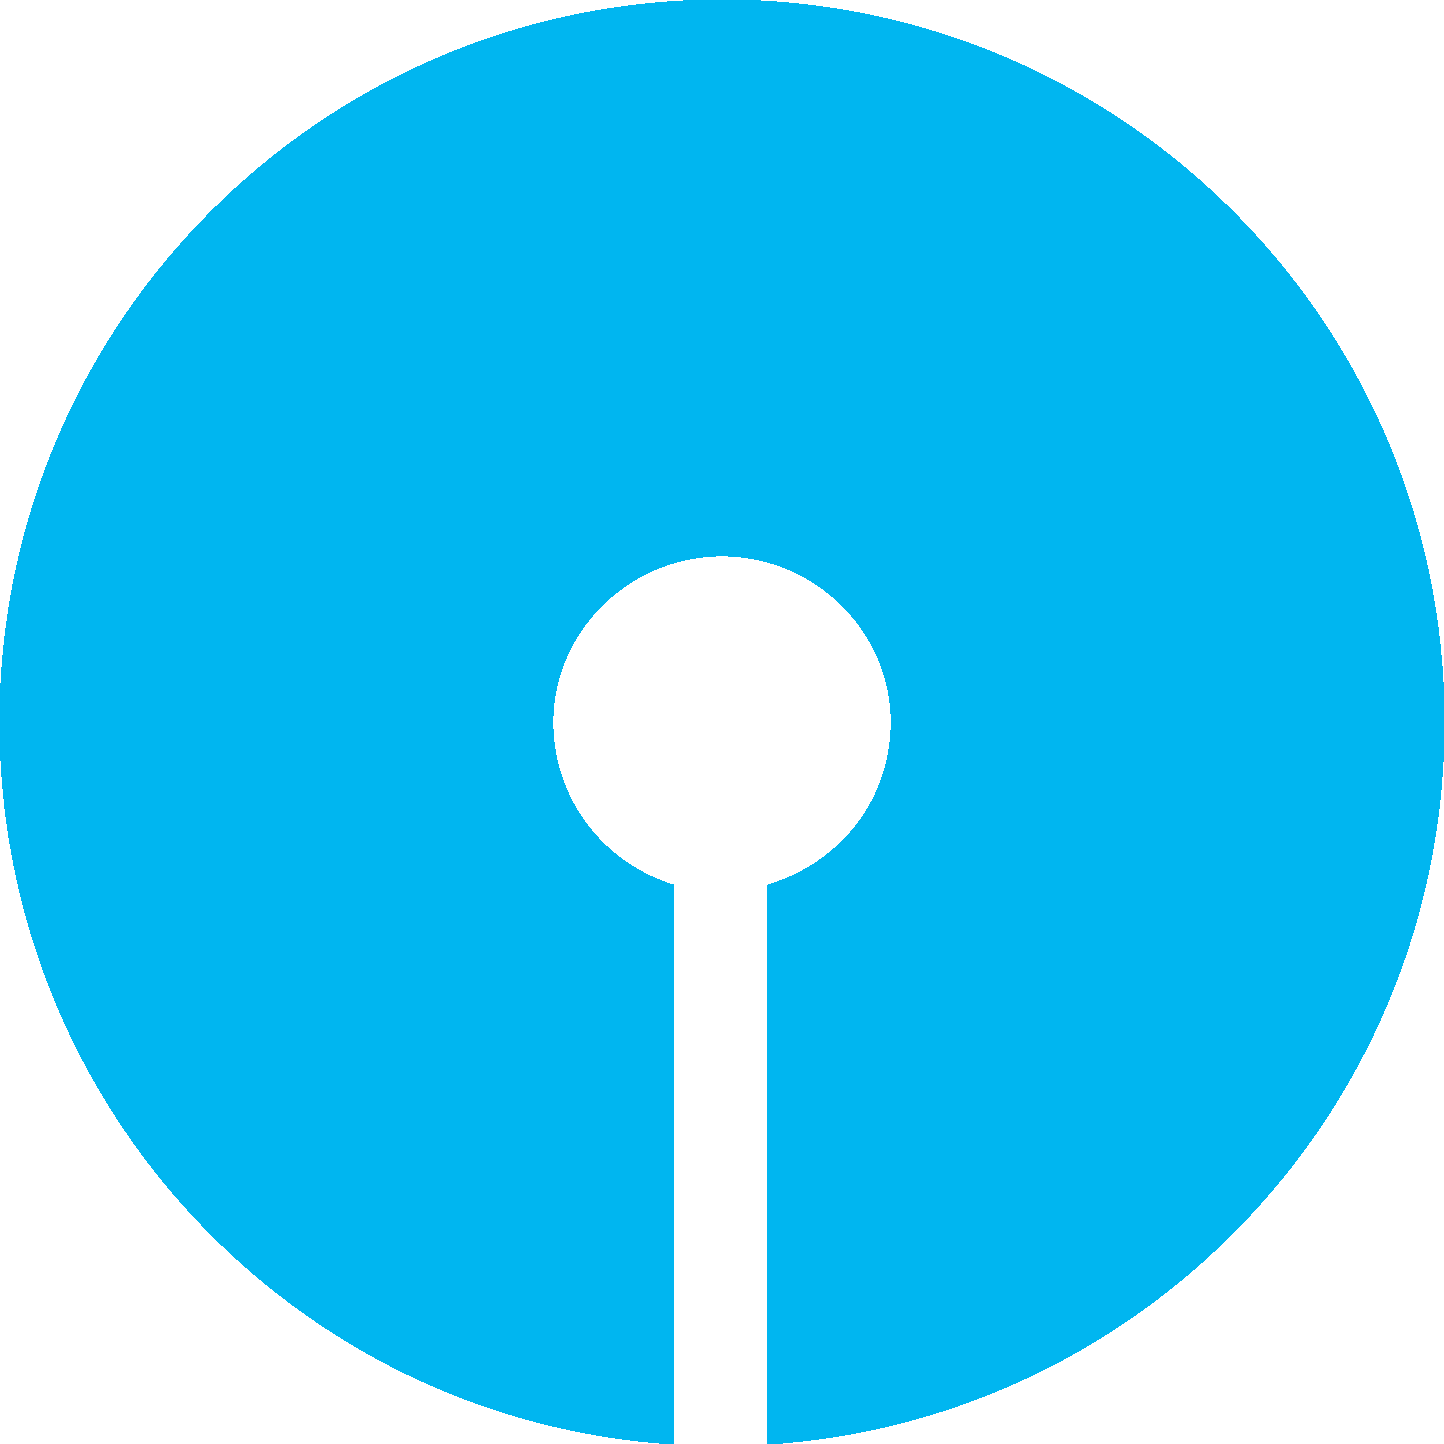 sbi logo [State Bank of India Group] Download Vector